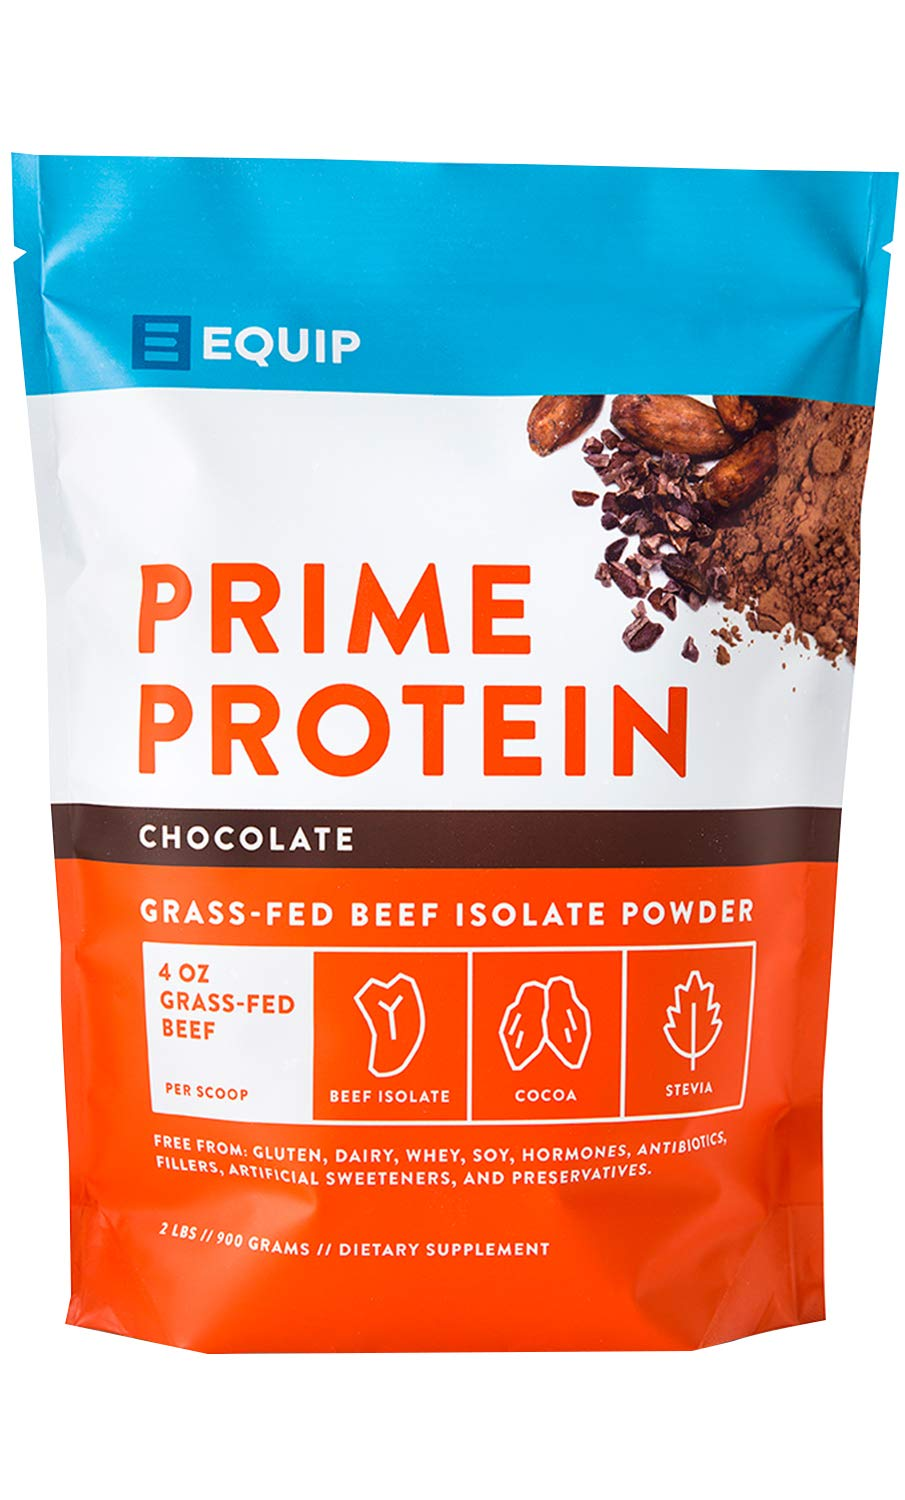 Beef Paleo Protein Powder: Keto Collagen Low Carb Ketogenic Diet Supplement Vital for Caveman & Carnivore Nutrition of Ancient Source. Best as Gelatin Muscle Meat Proteins Drink (Chocolate)